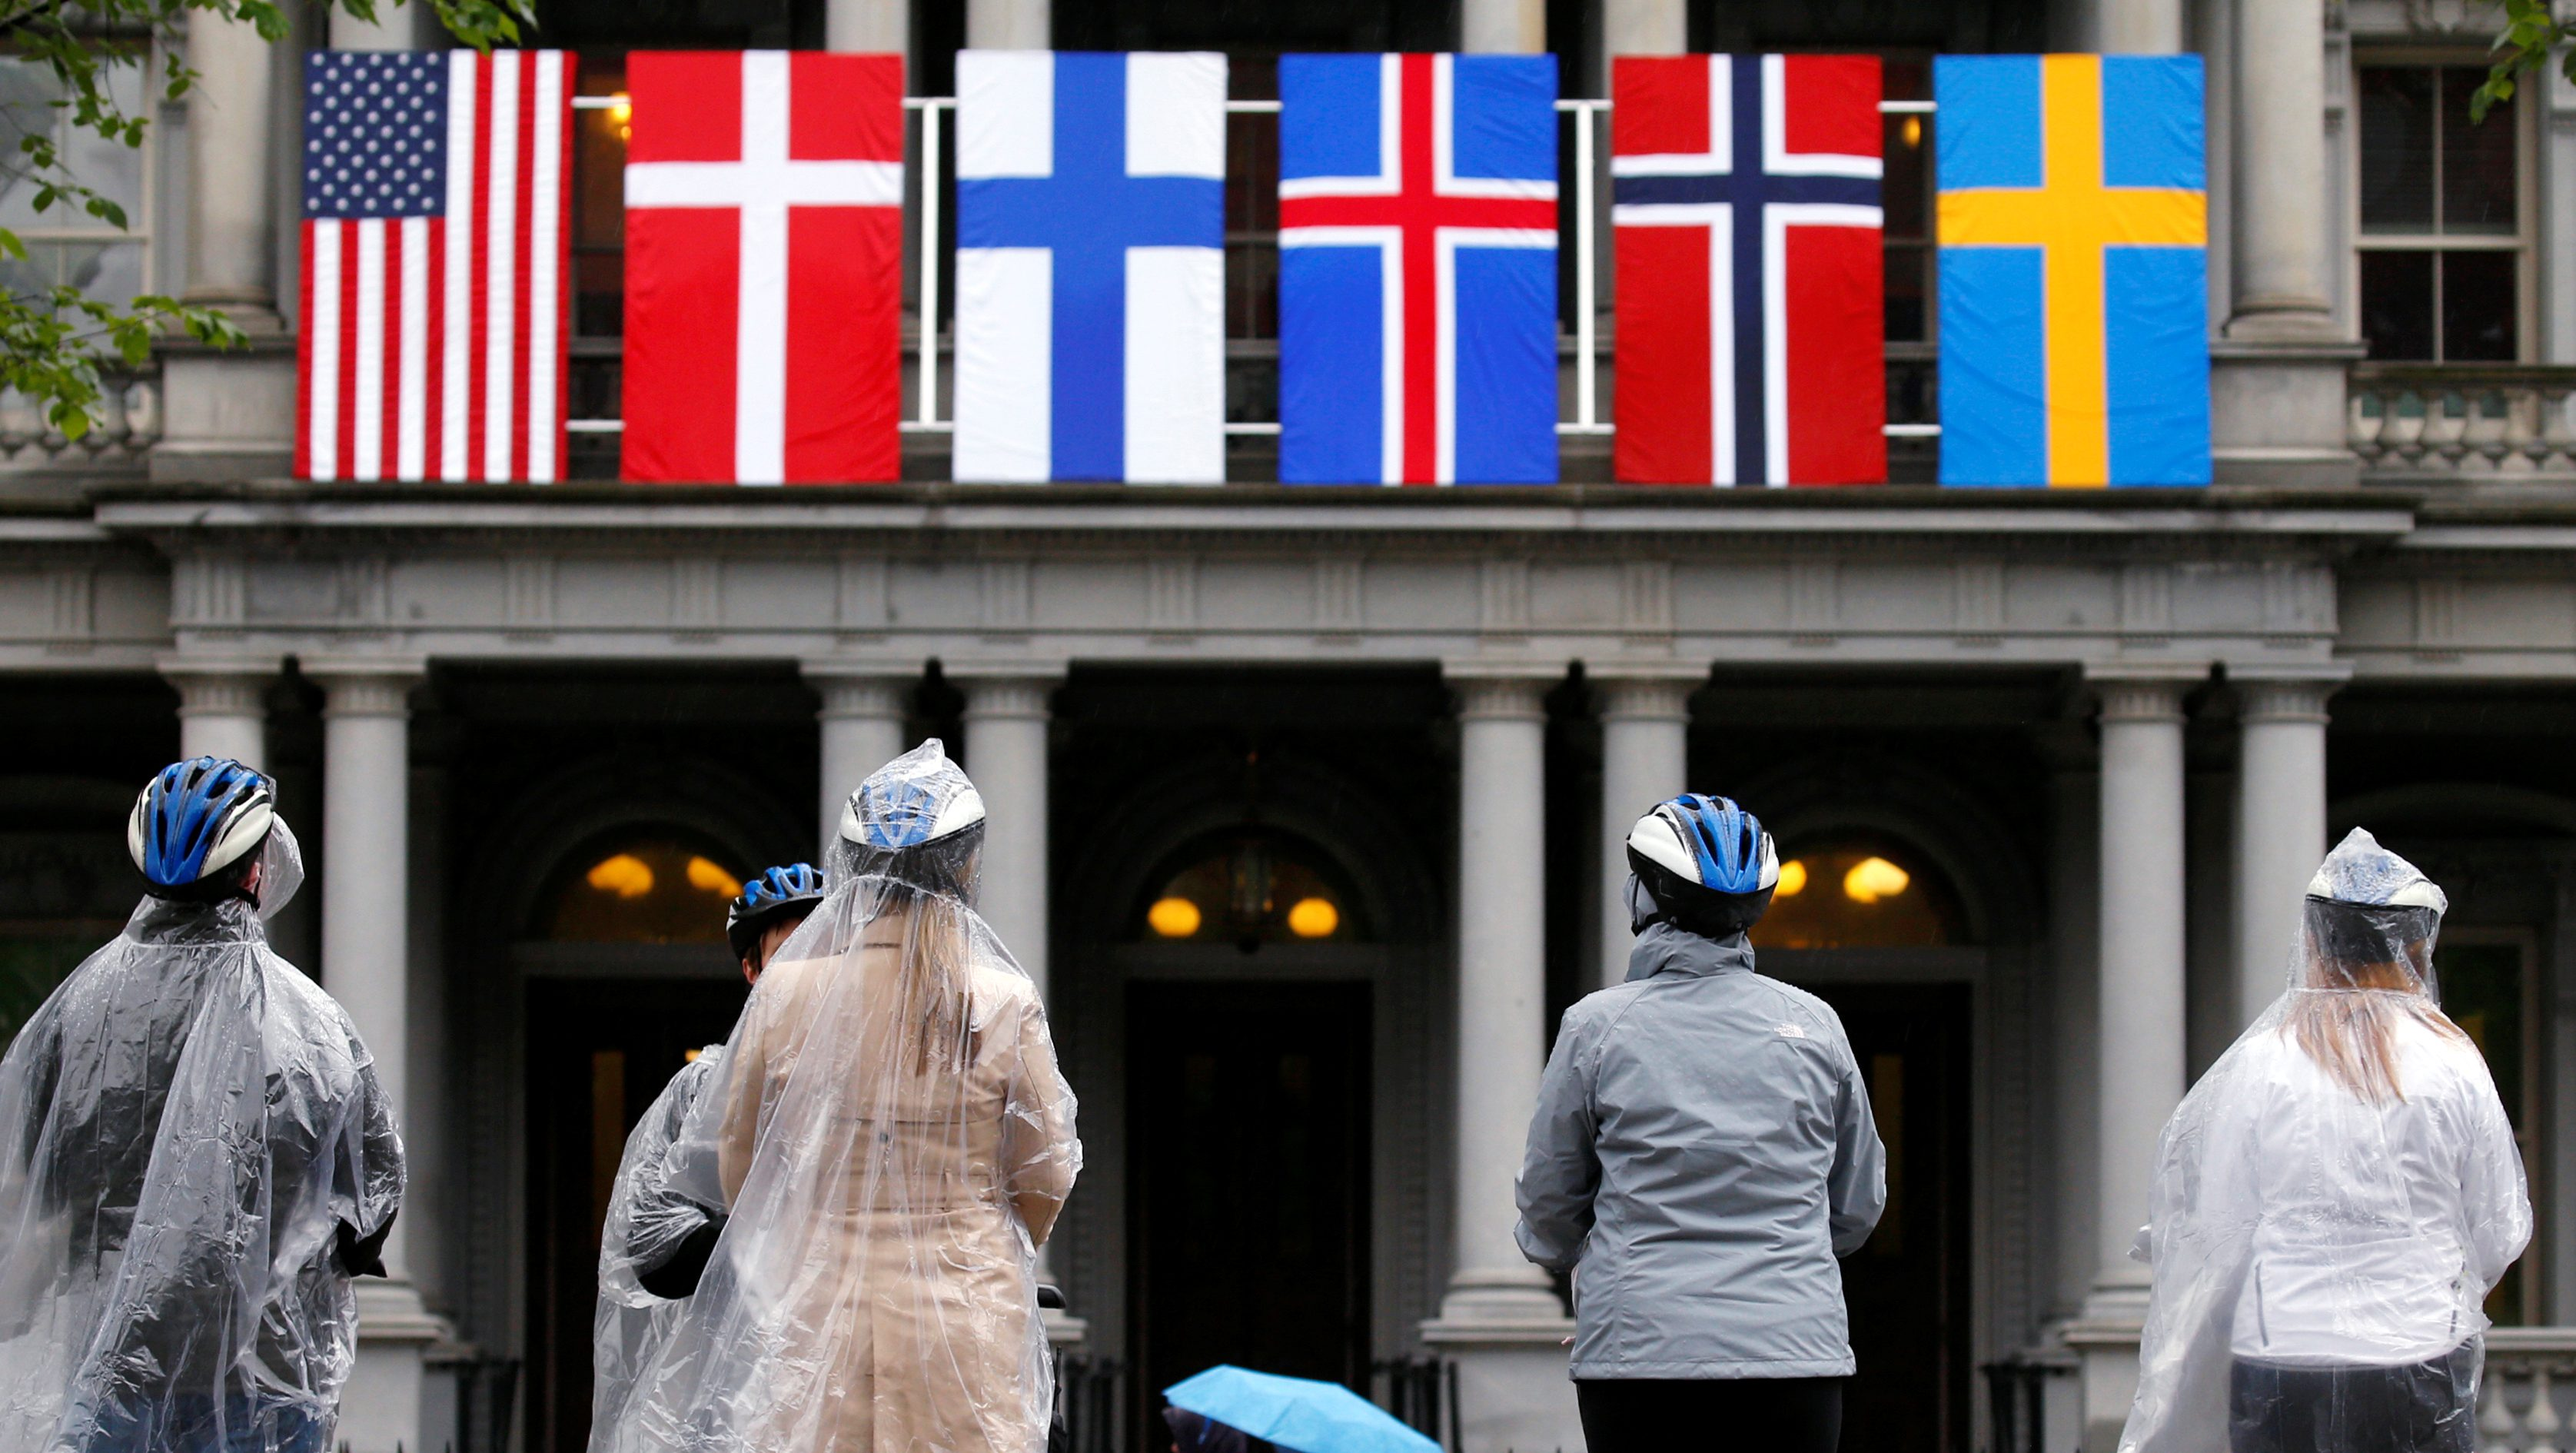 A segway tour stops in front of flags of the Nordic nations hanging from the Eisenhower Executive Office Building beside the White House in Washington, May 11, 2016. On Friday, U.S. President Barack Obama will host the leaders of Denmark, Finland, Iceland, Norway and Sweden for a U.S.-Nordic Leaders Summit. REUTERS/Kevin Lamarque - RTX2DW5U